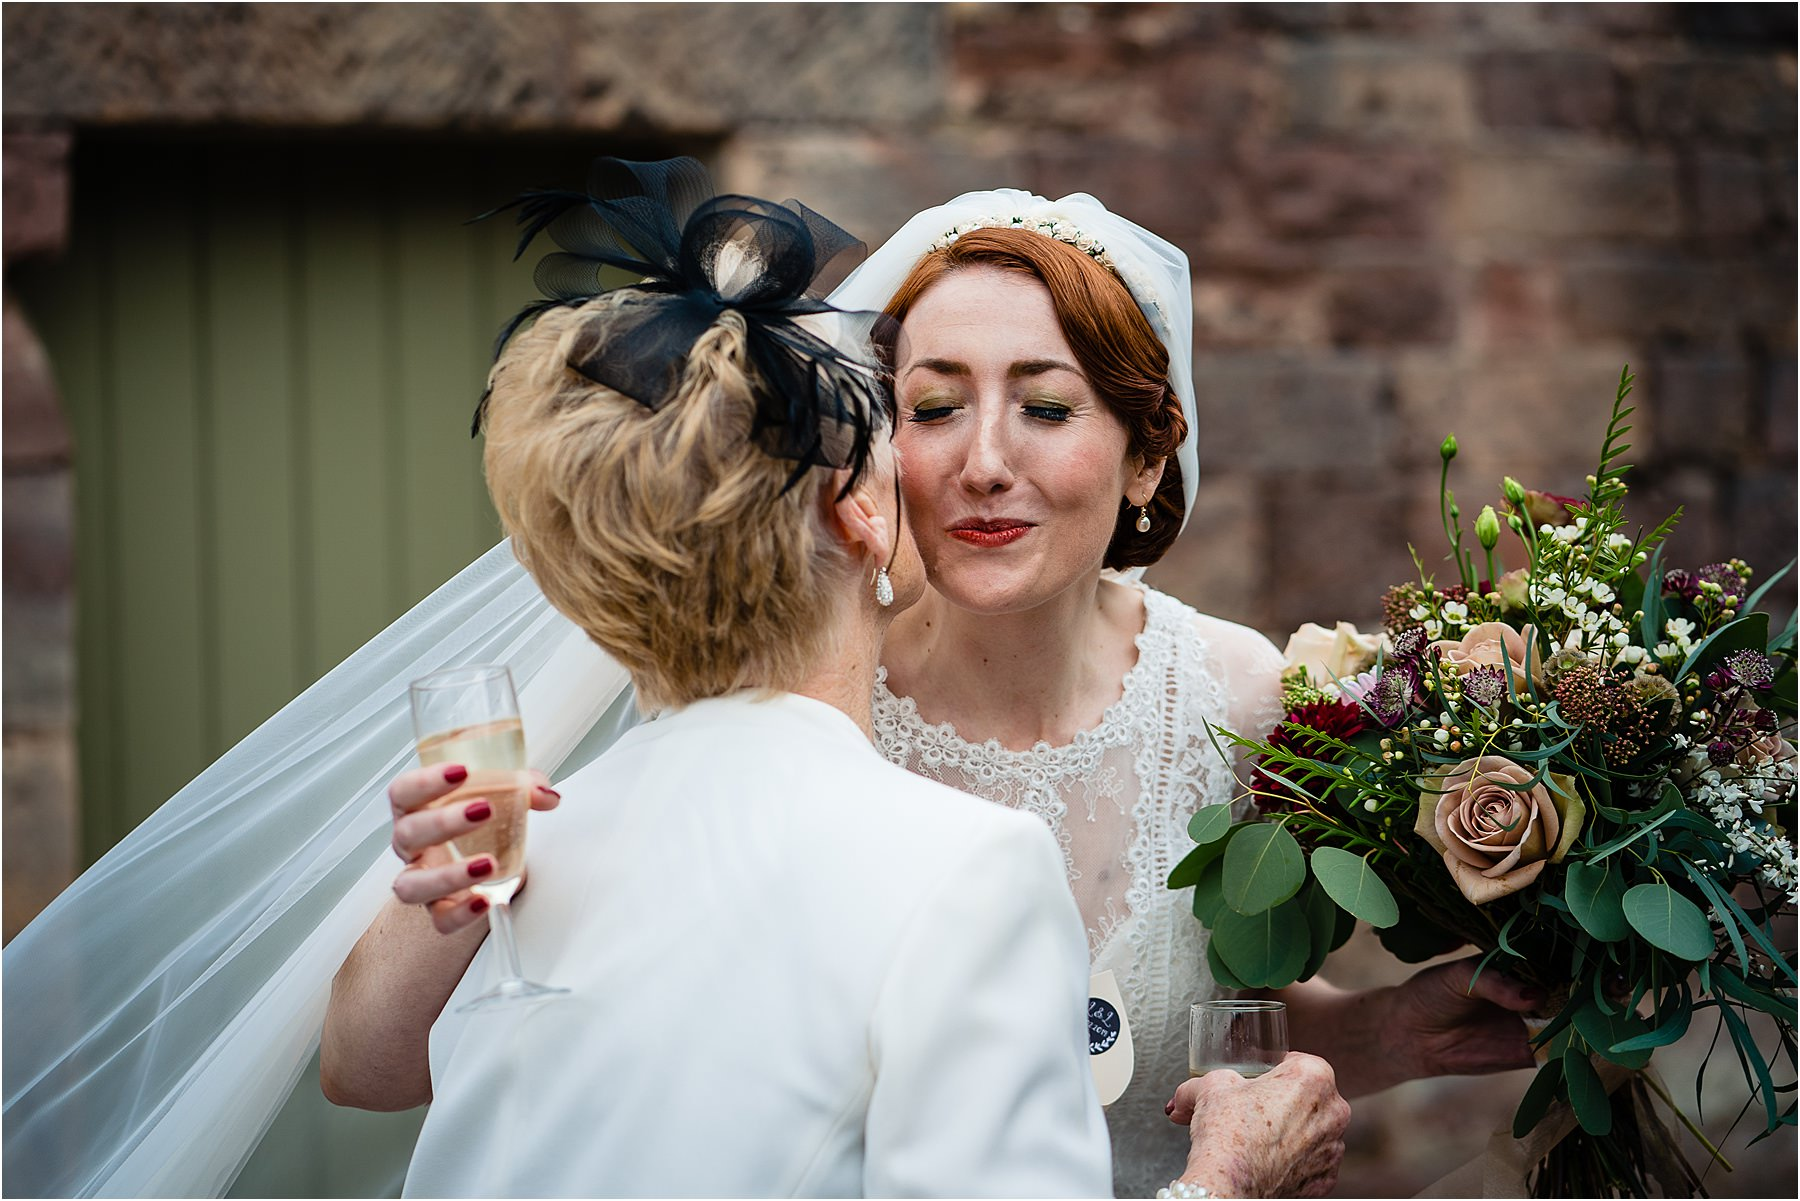 natural wedding photos at the ashes barns